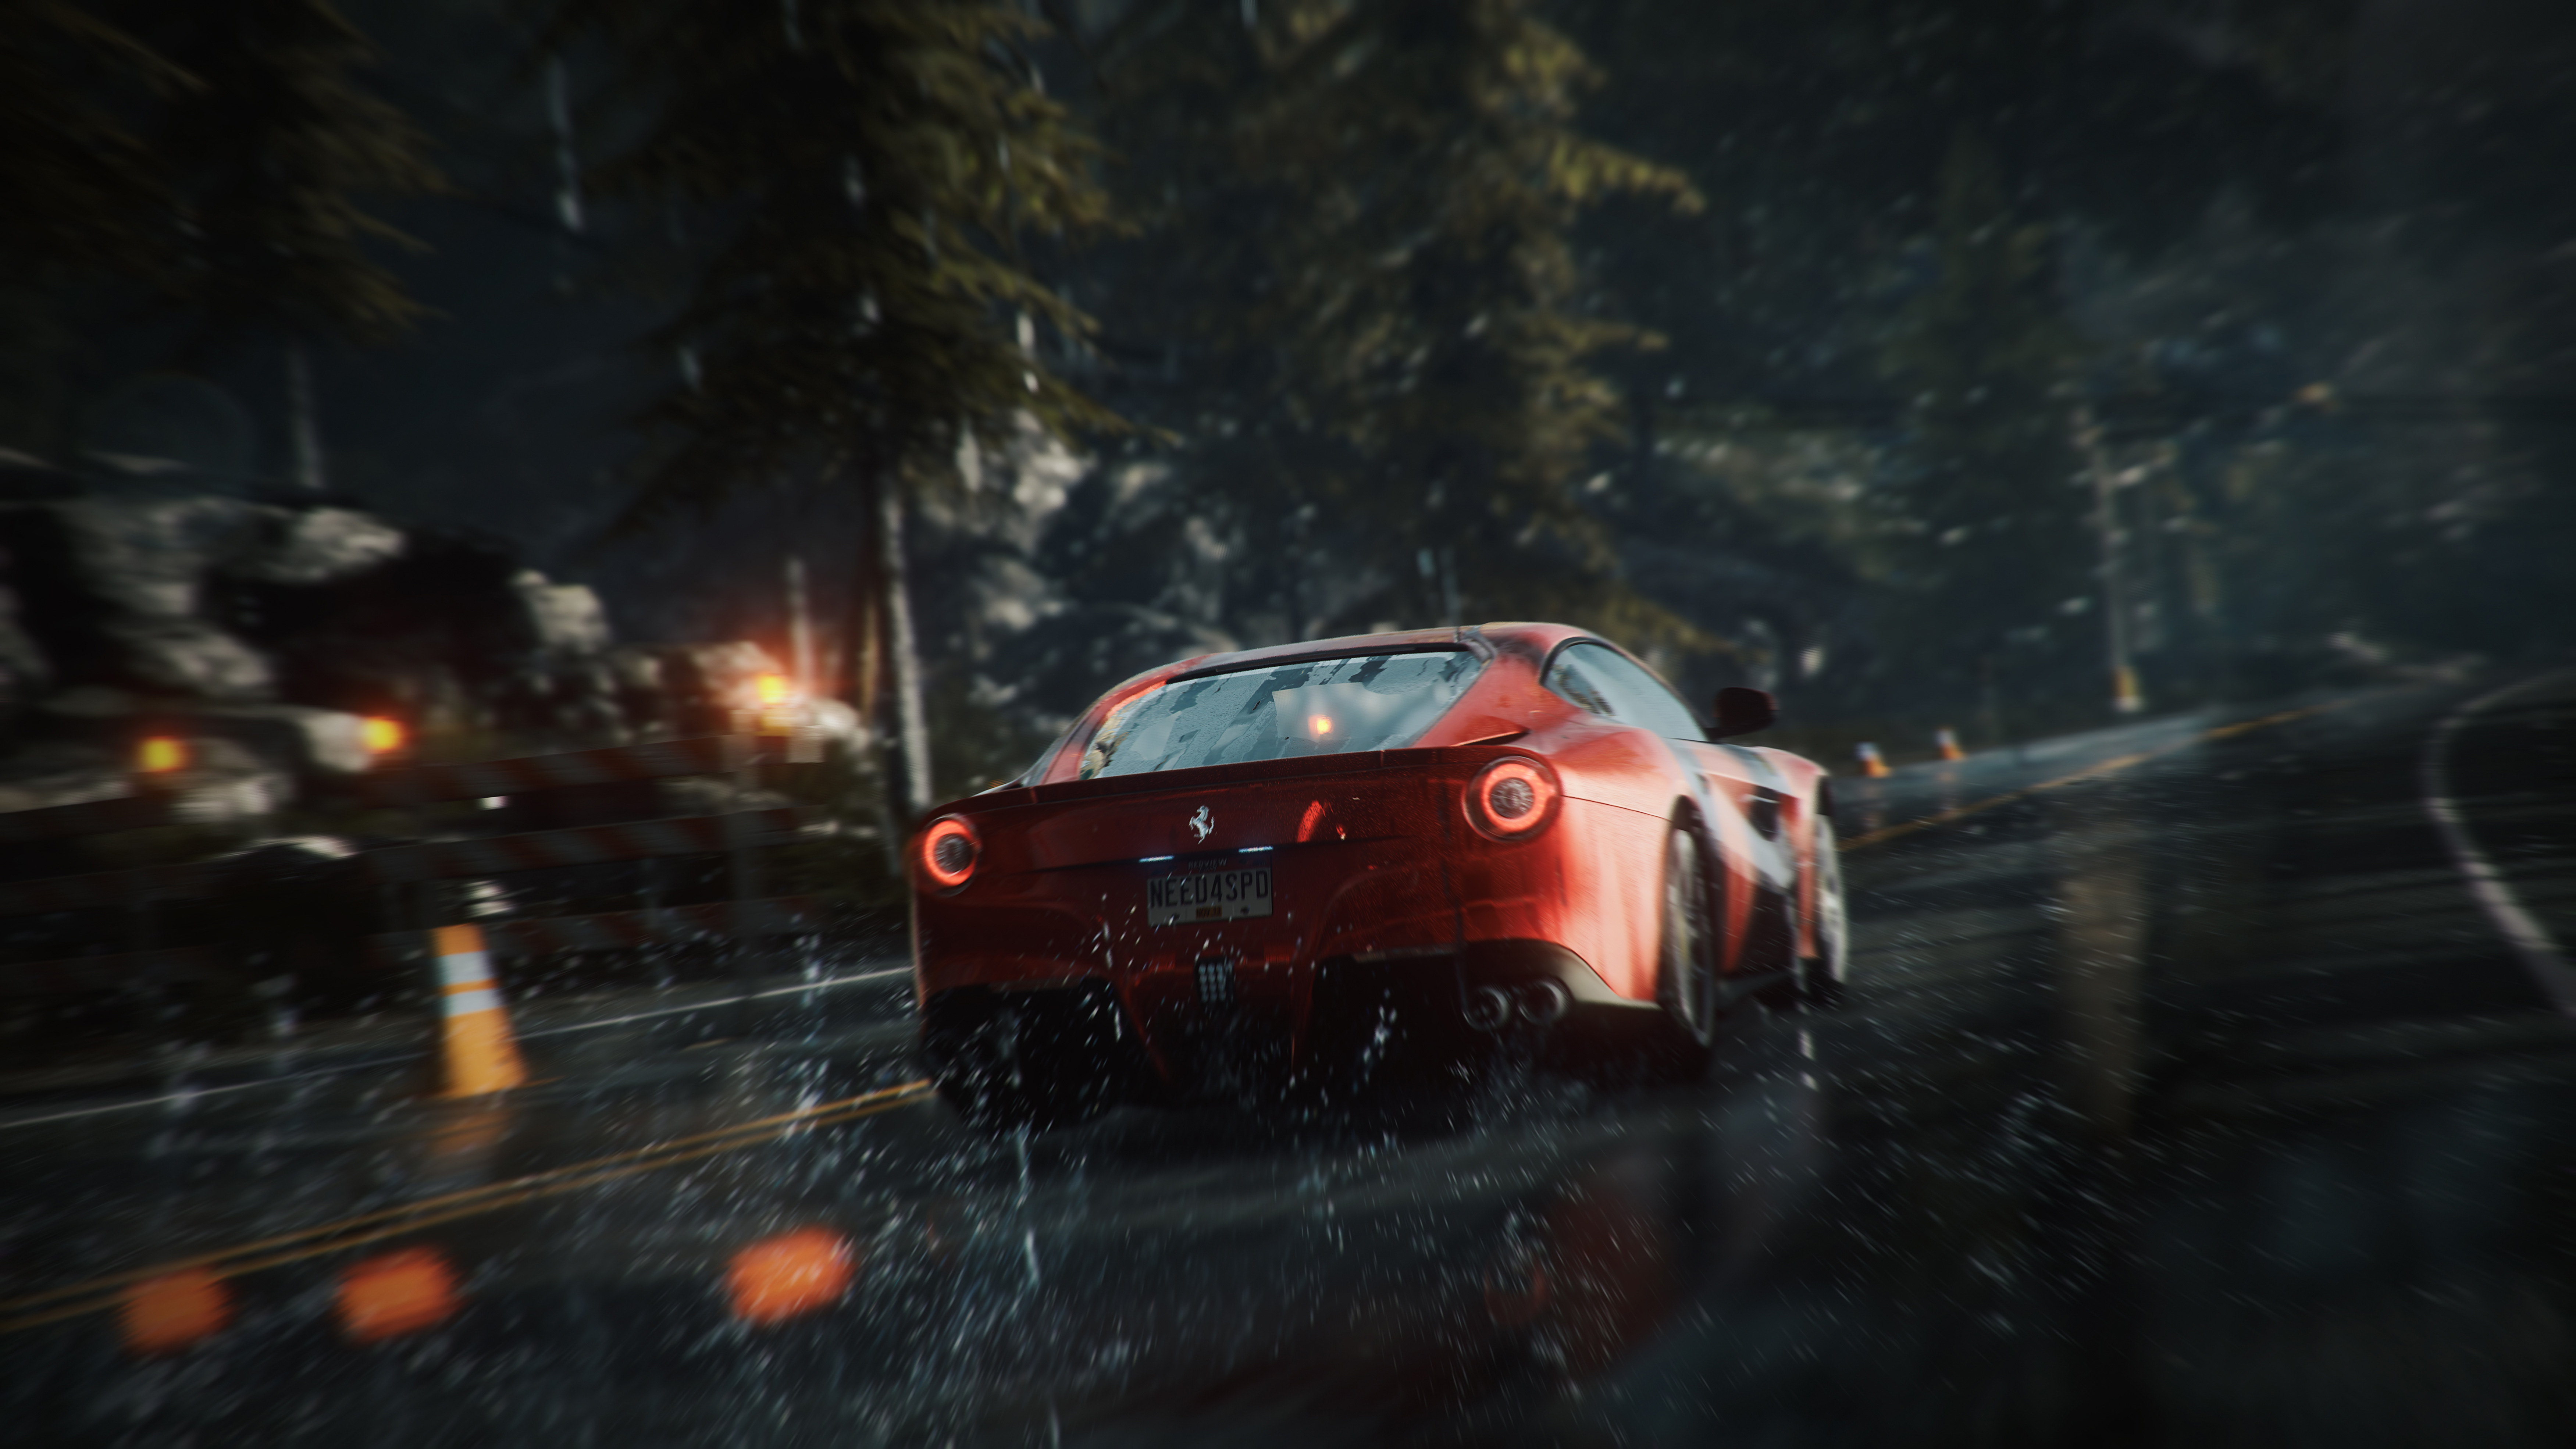 need for speed rivals 8k, hd games, 4k wallpapers, images